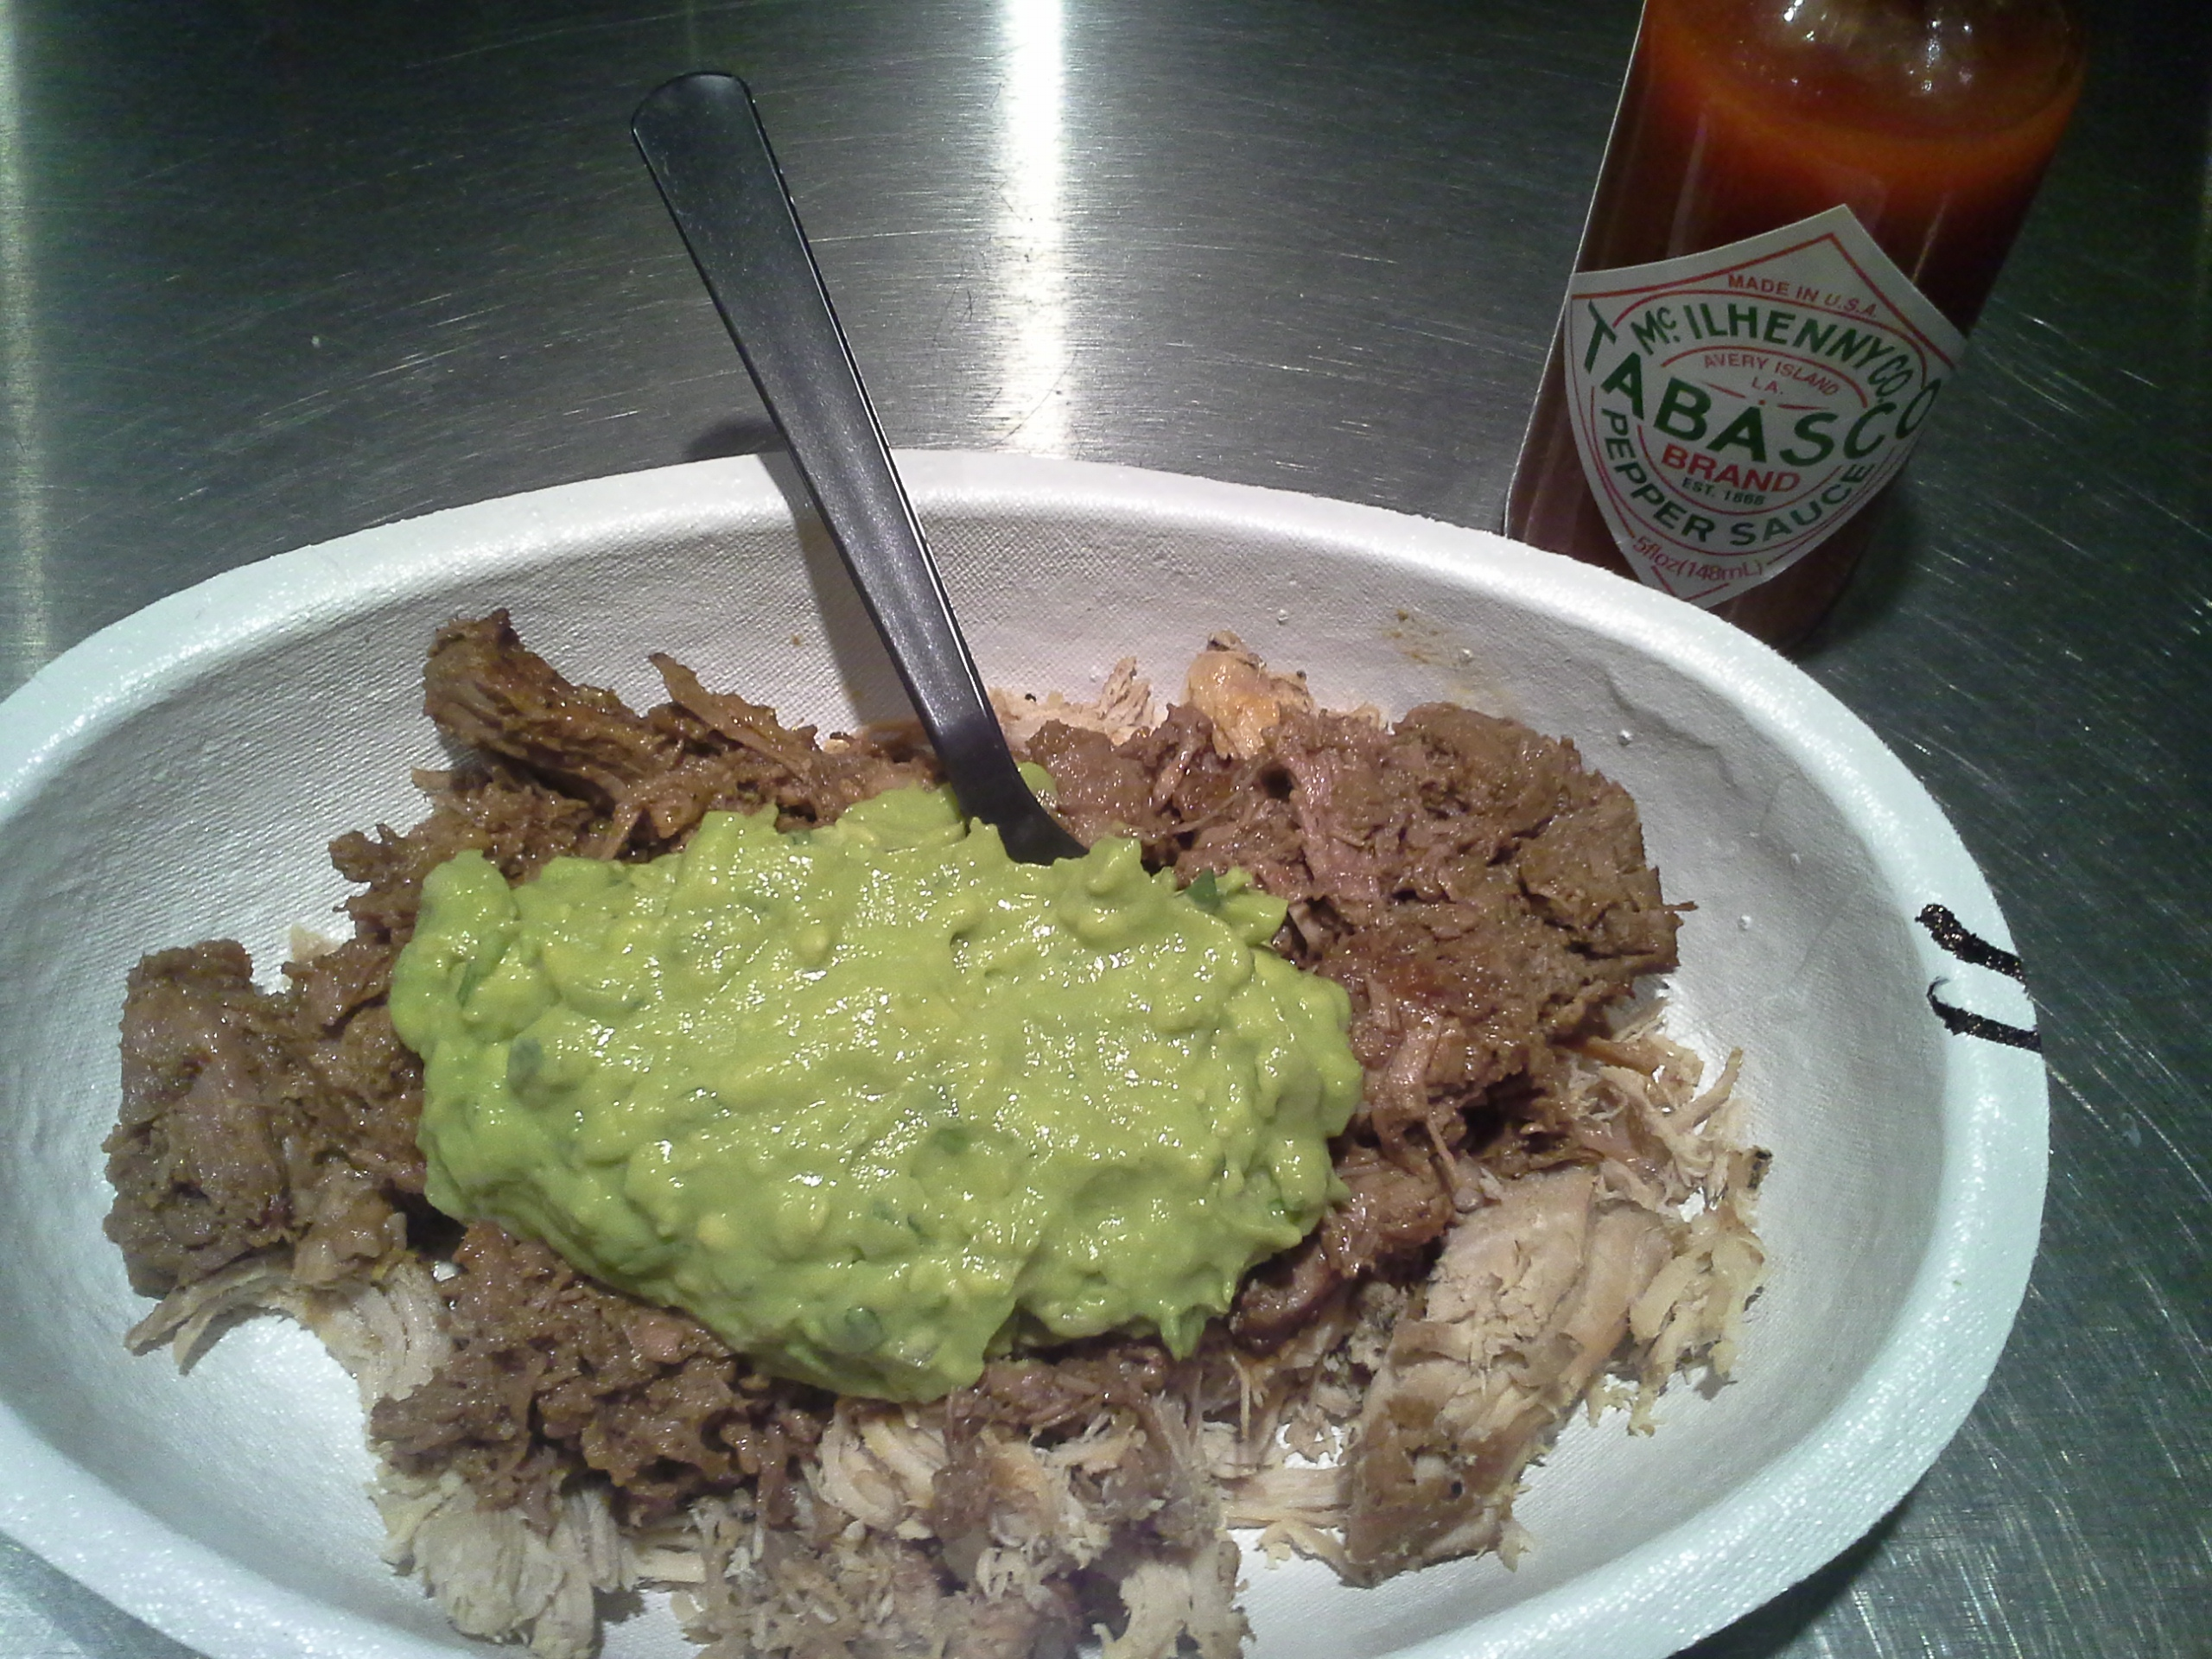 Dinner: 8:00 p.m. | Barbacoa, carnitas, guacamole, Tabasco from Chipotle